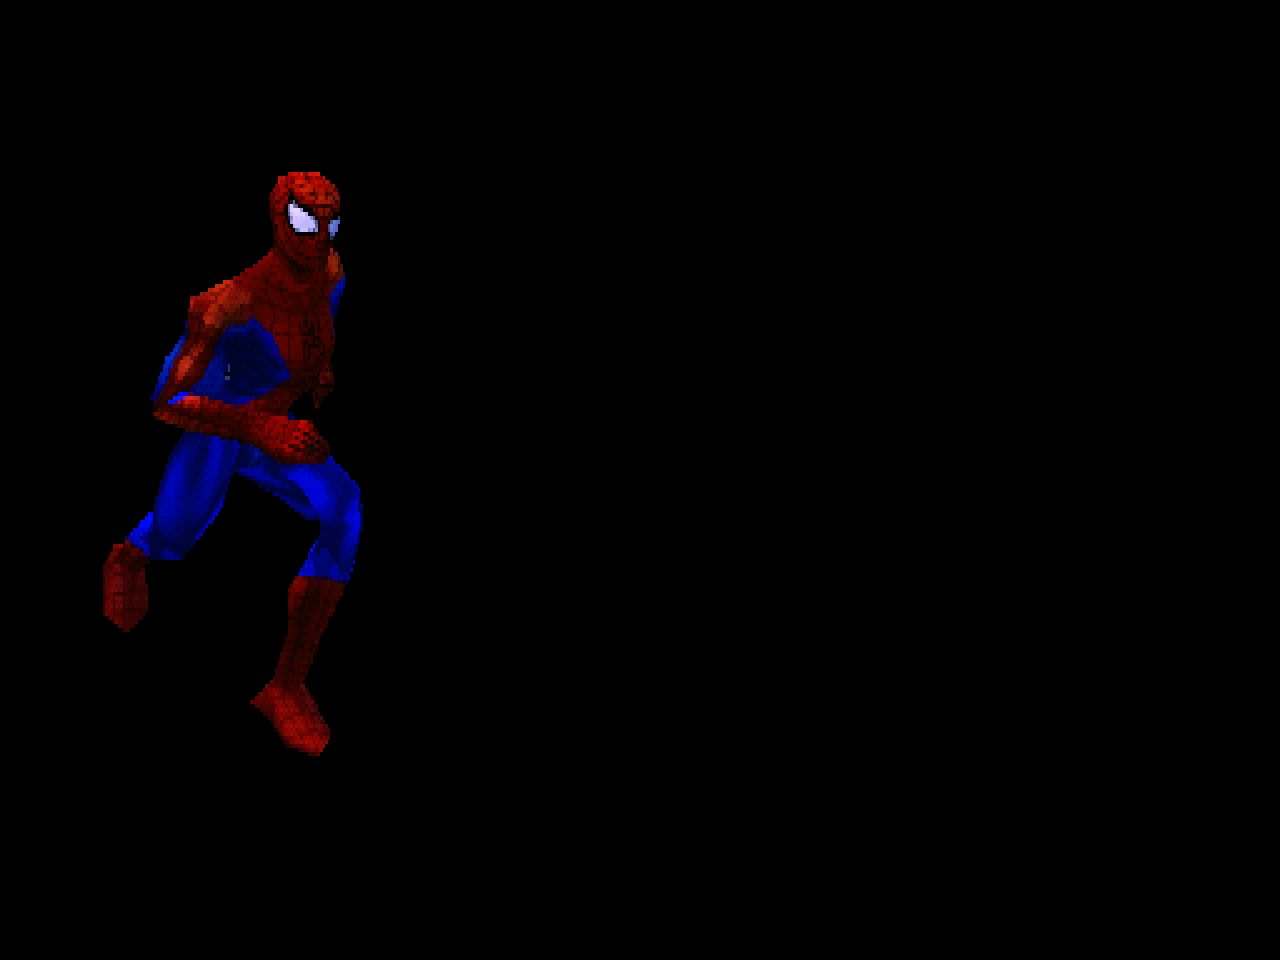 https://s3.eu-west-3.amazonaws.com/games.anthony-dessalles.com/Spider-Man 2 Enter Electro PS1 2020 - Screenshots/Spider-Man 2 Enter Electro-201125-184852.png